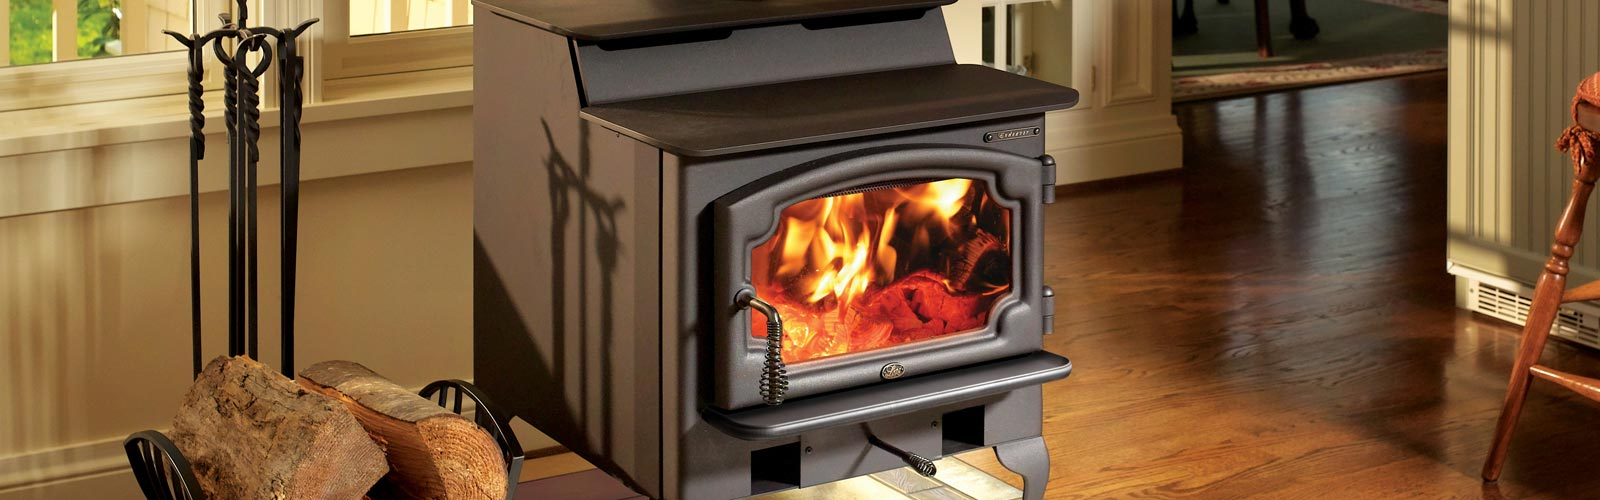 custom hearth u2013 fireplaces wood stoves outdoor living